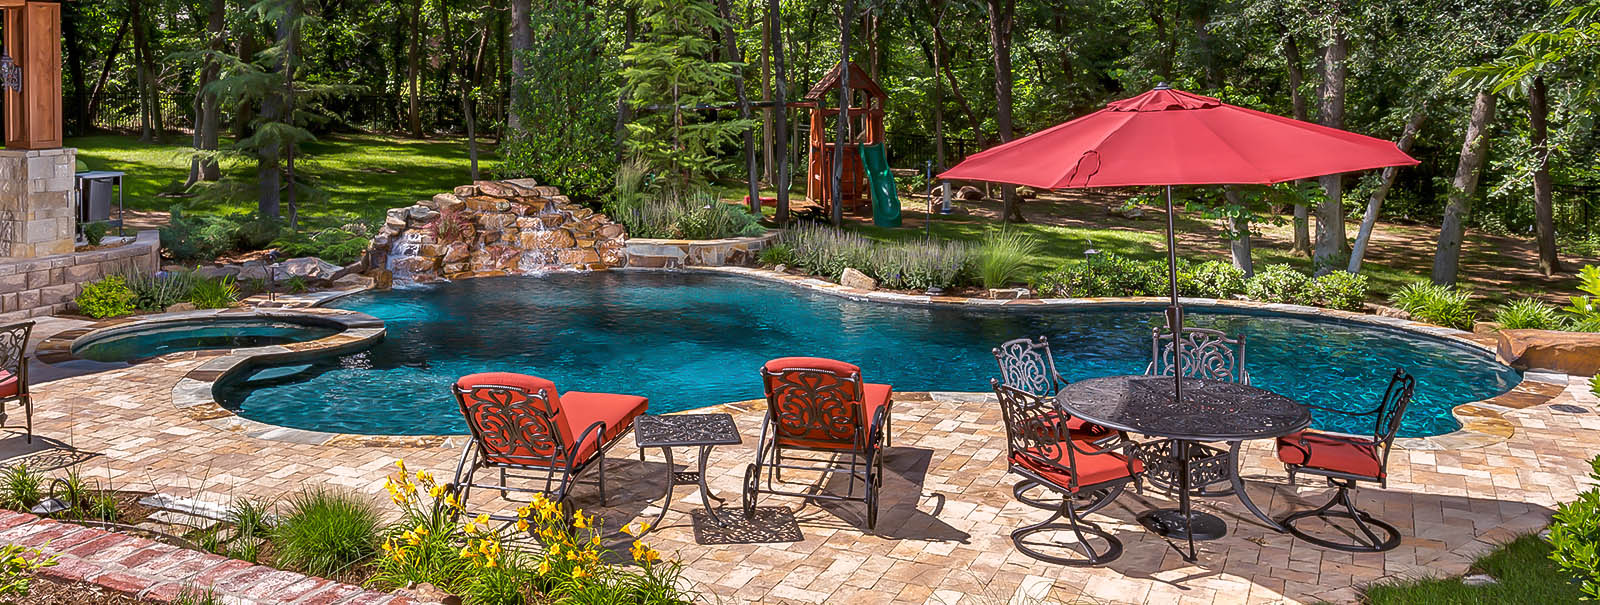 kansas city custom swimming pool builders blue haven pools